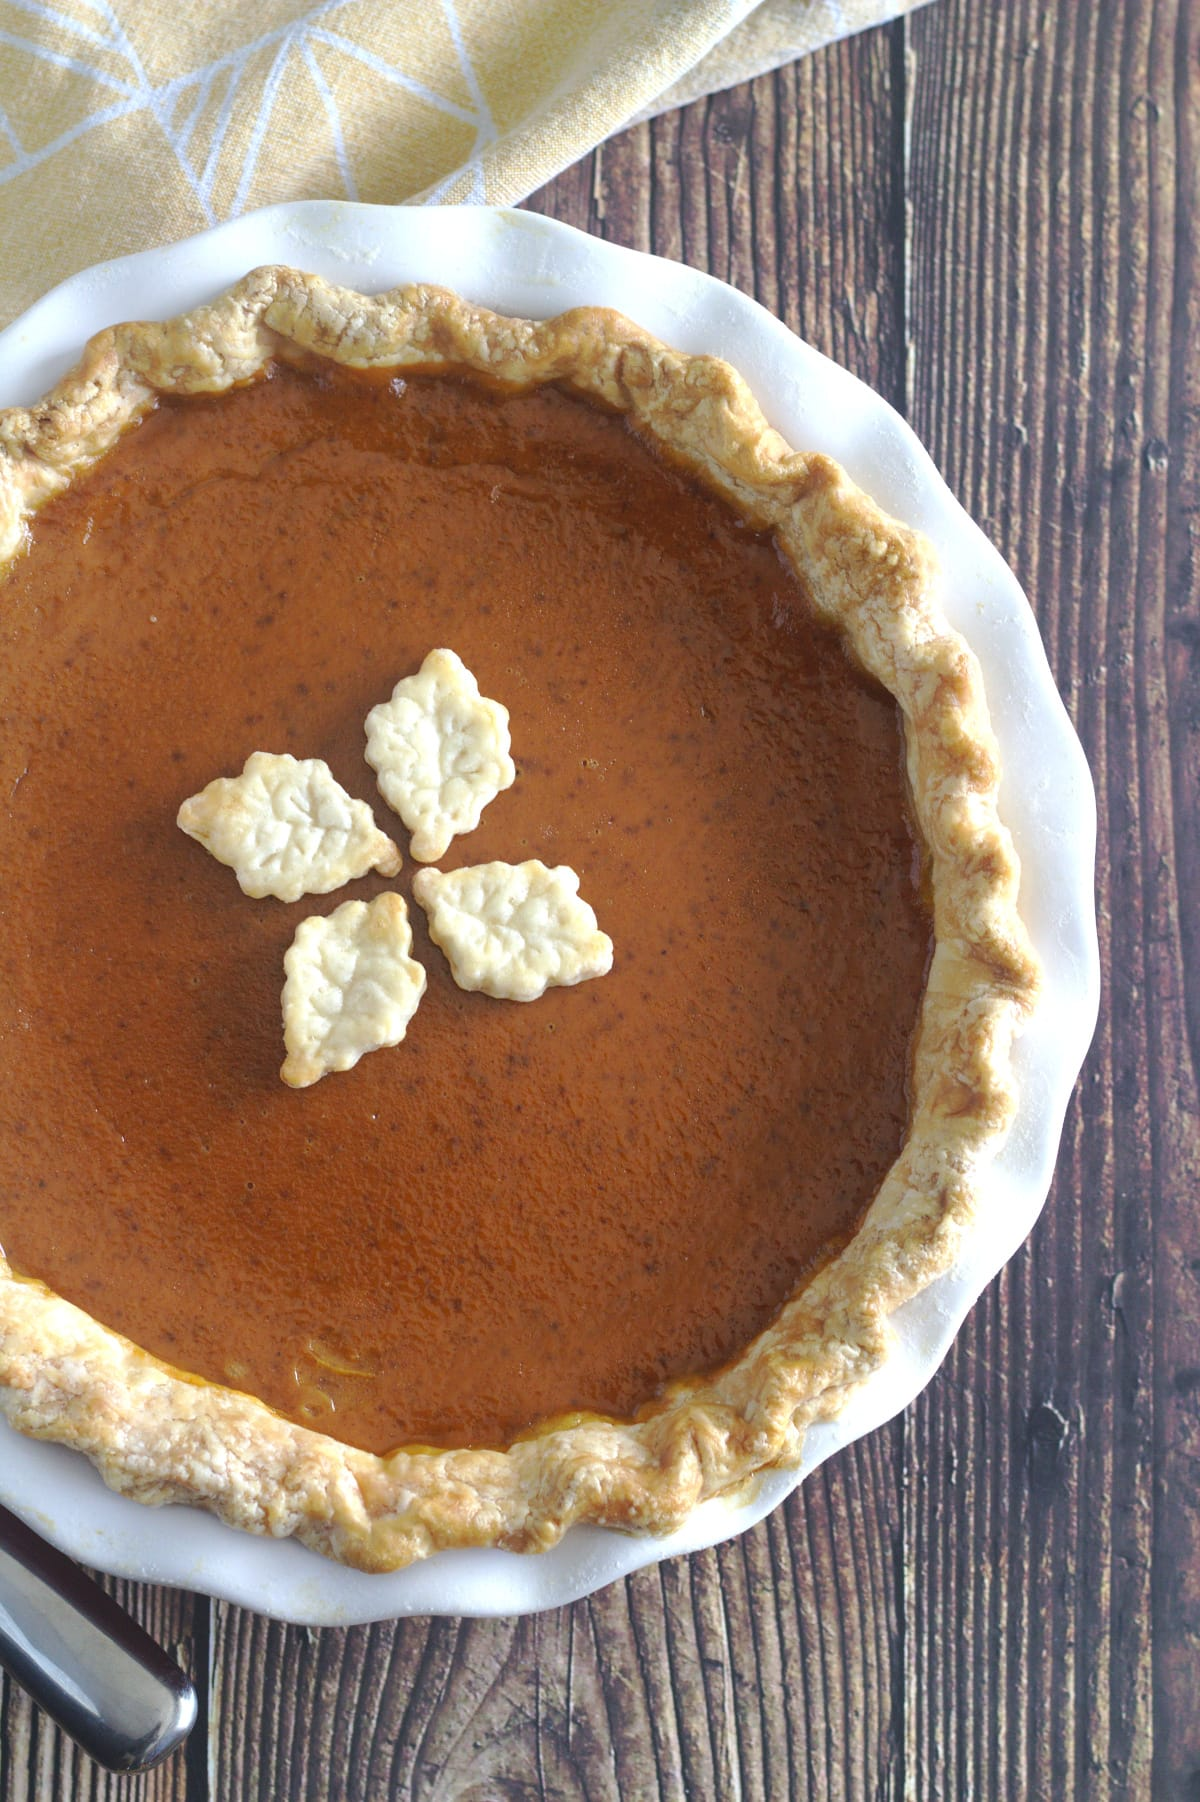 A pumpkin pie with leaf decorations on it.